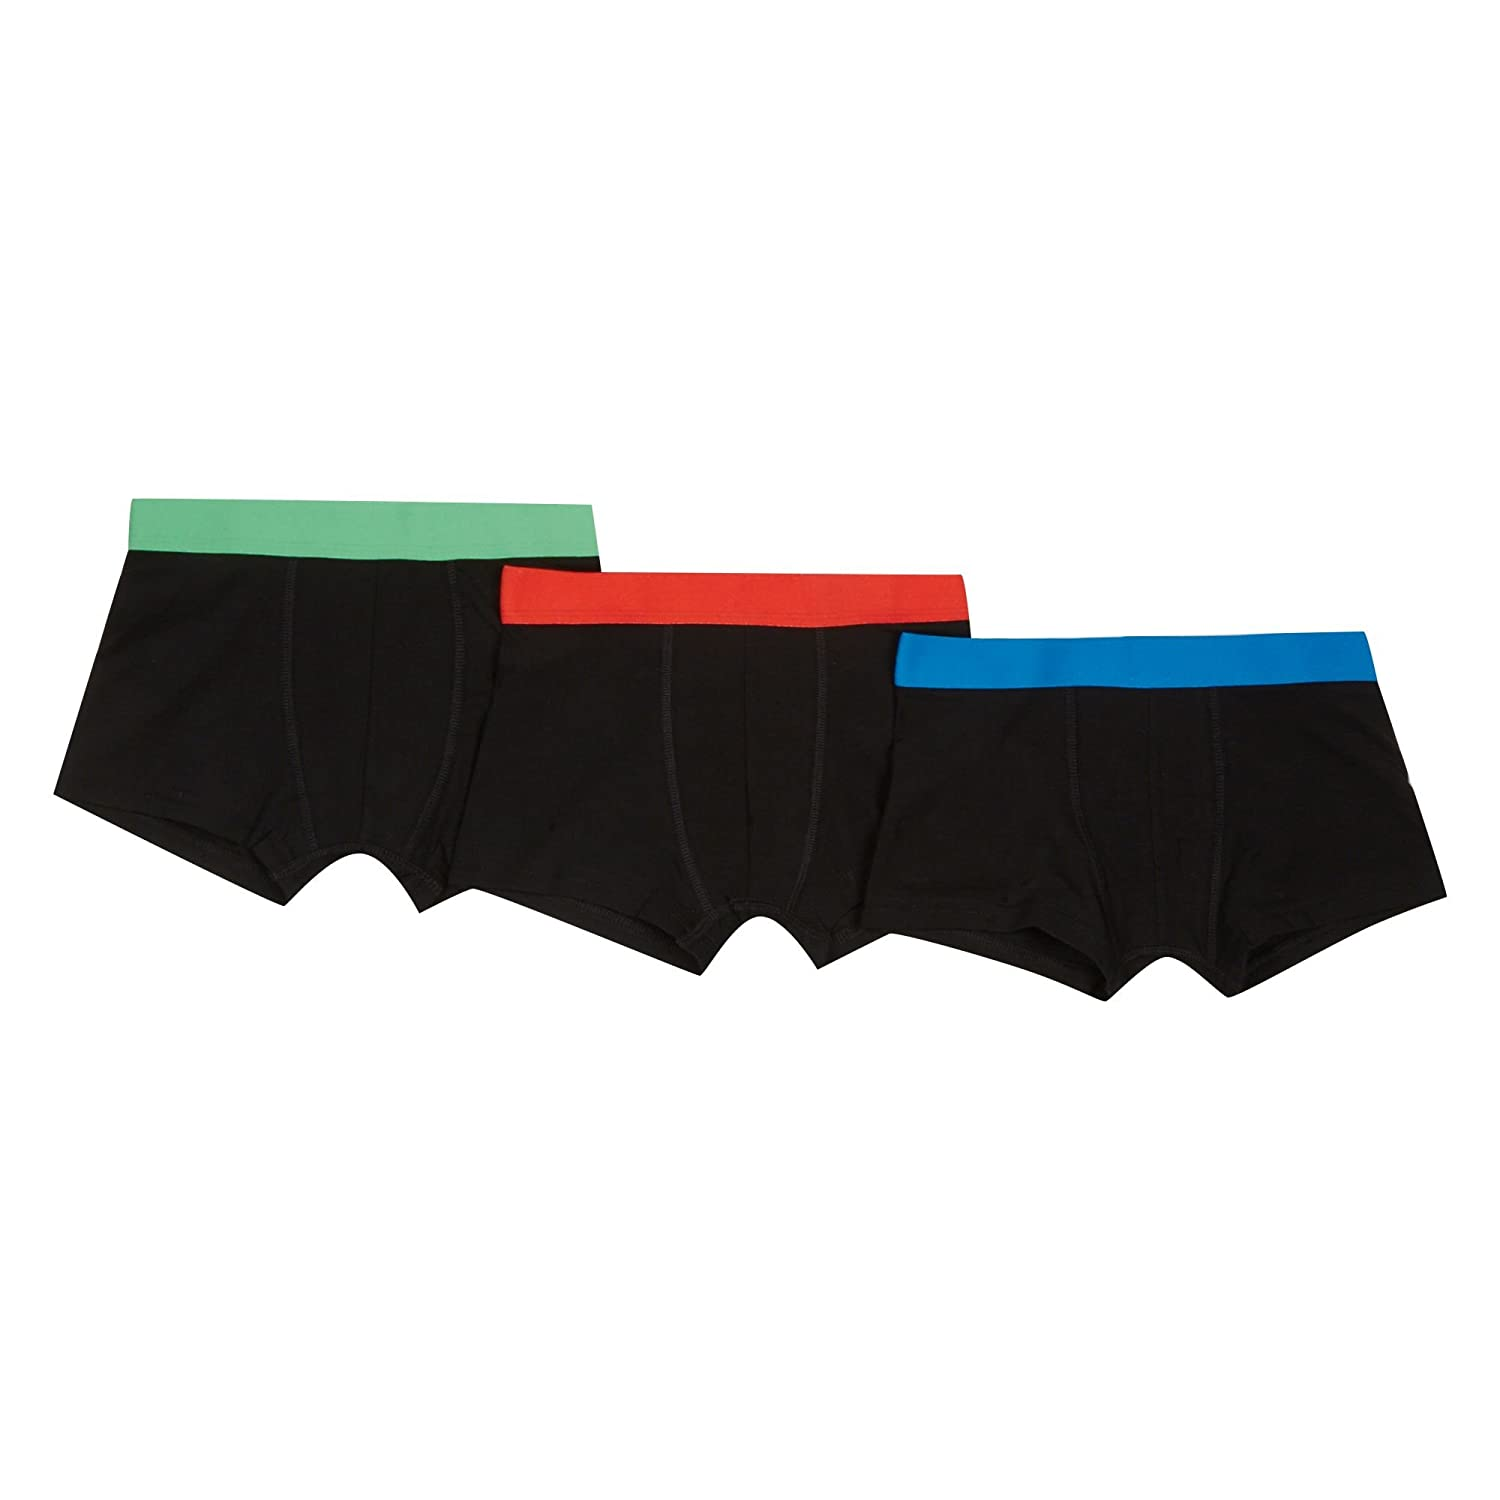 Debenhams Kids 'Boys' 3 Pack Black Trunks